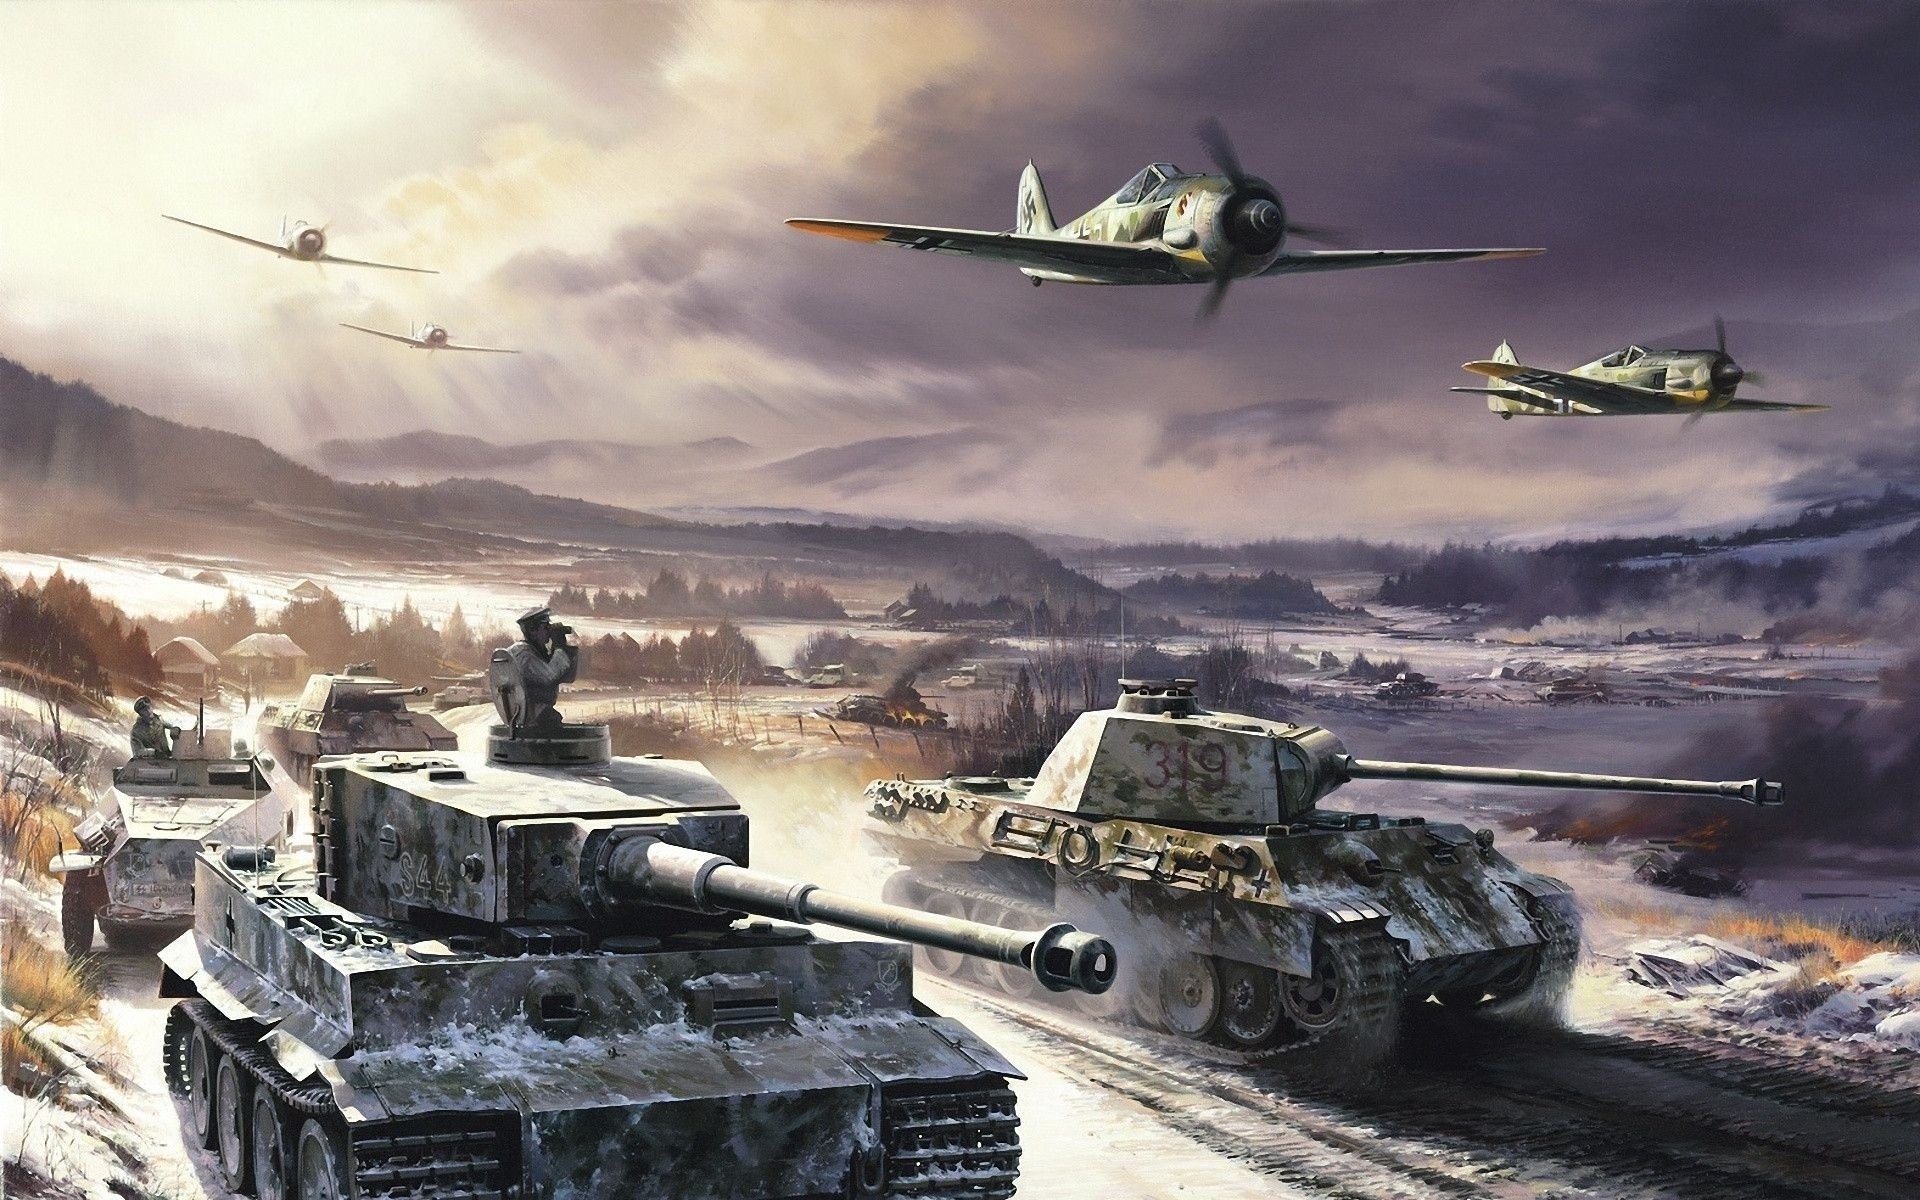 ww2 wallpaper ·① download free amazing high resolution wallpapers